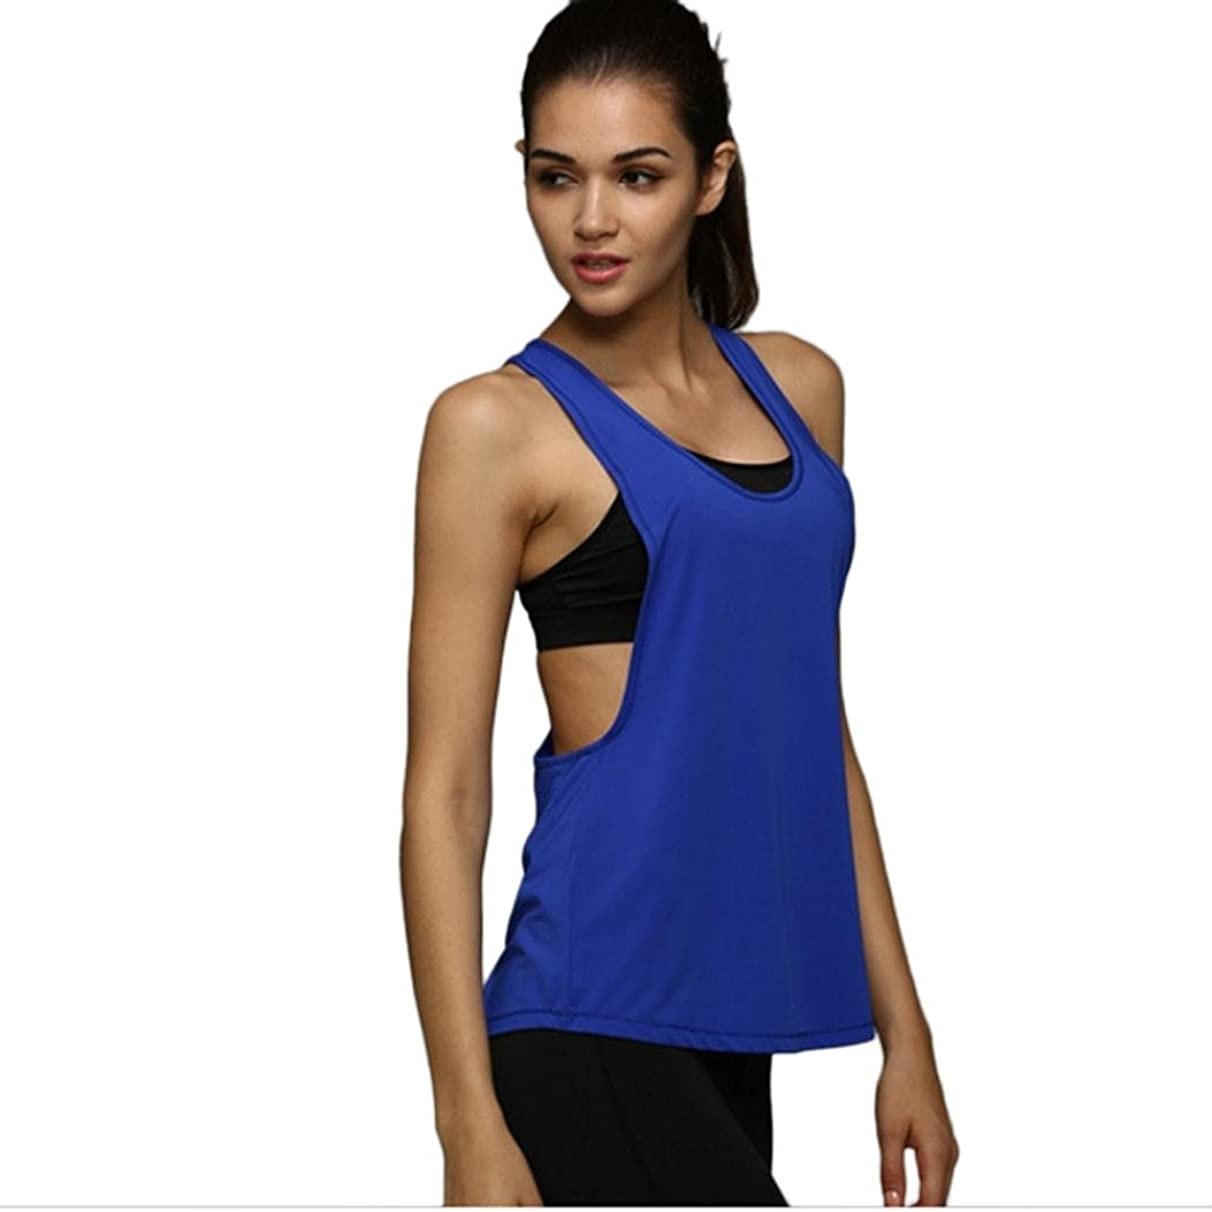 Kstare Women's Tank Top Shirt Athletic Racerback Vest For Running Yoga Workout